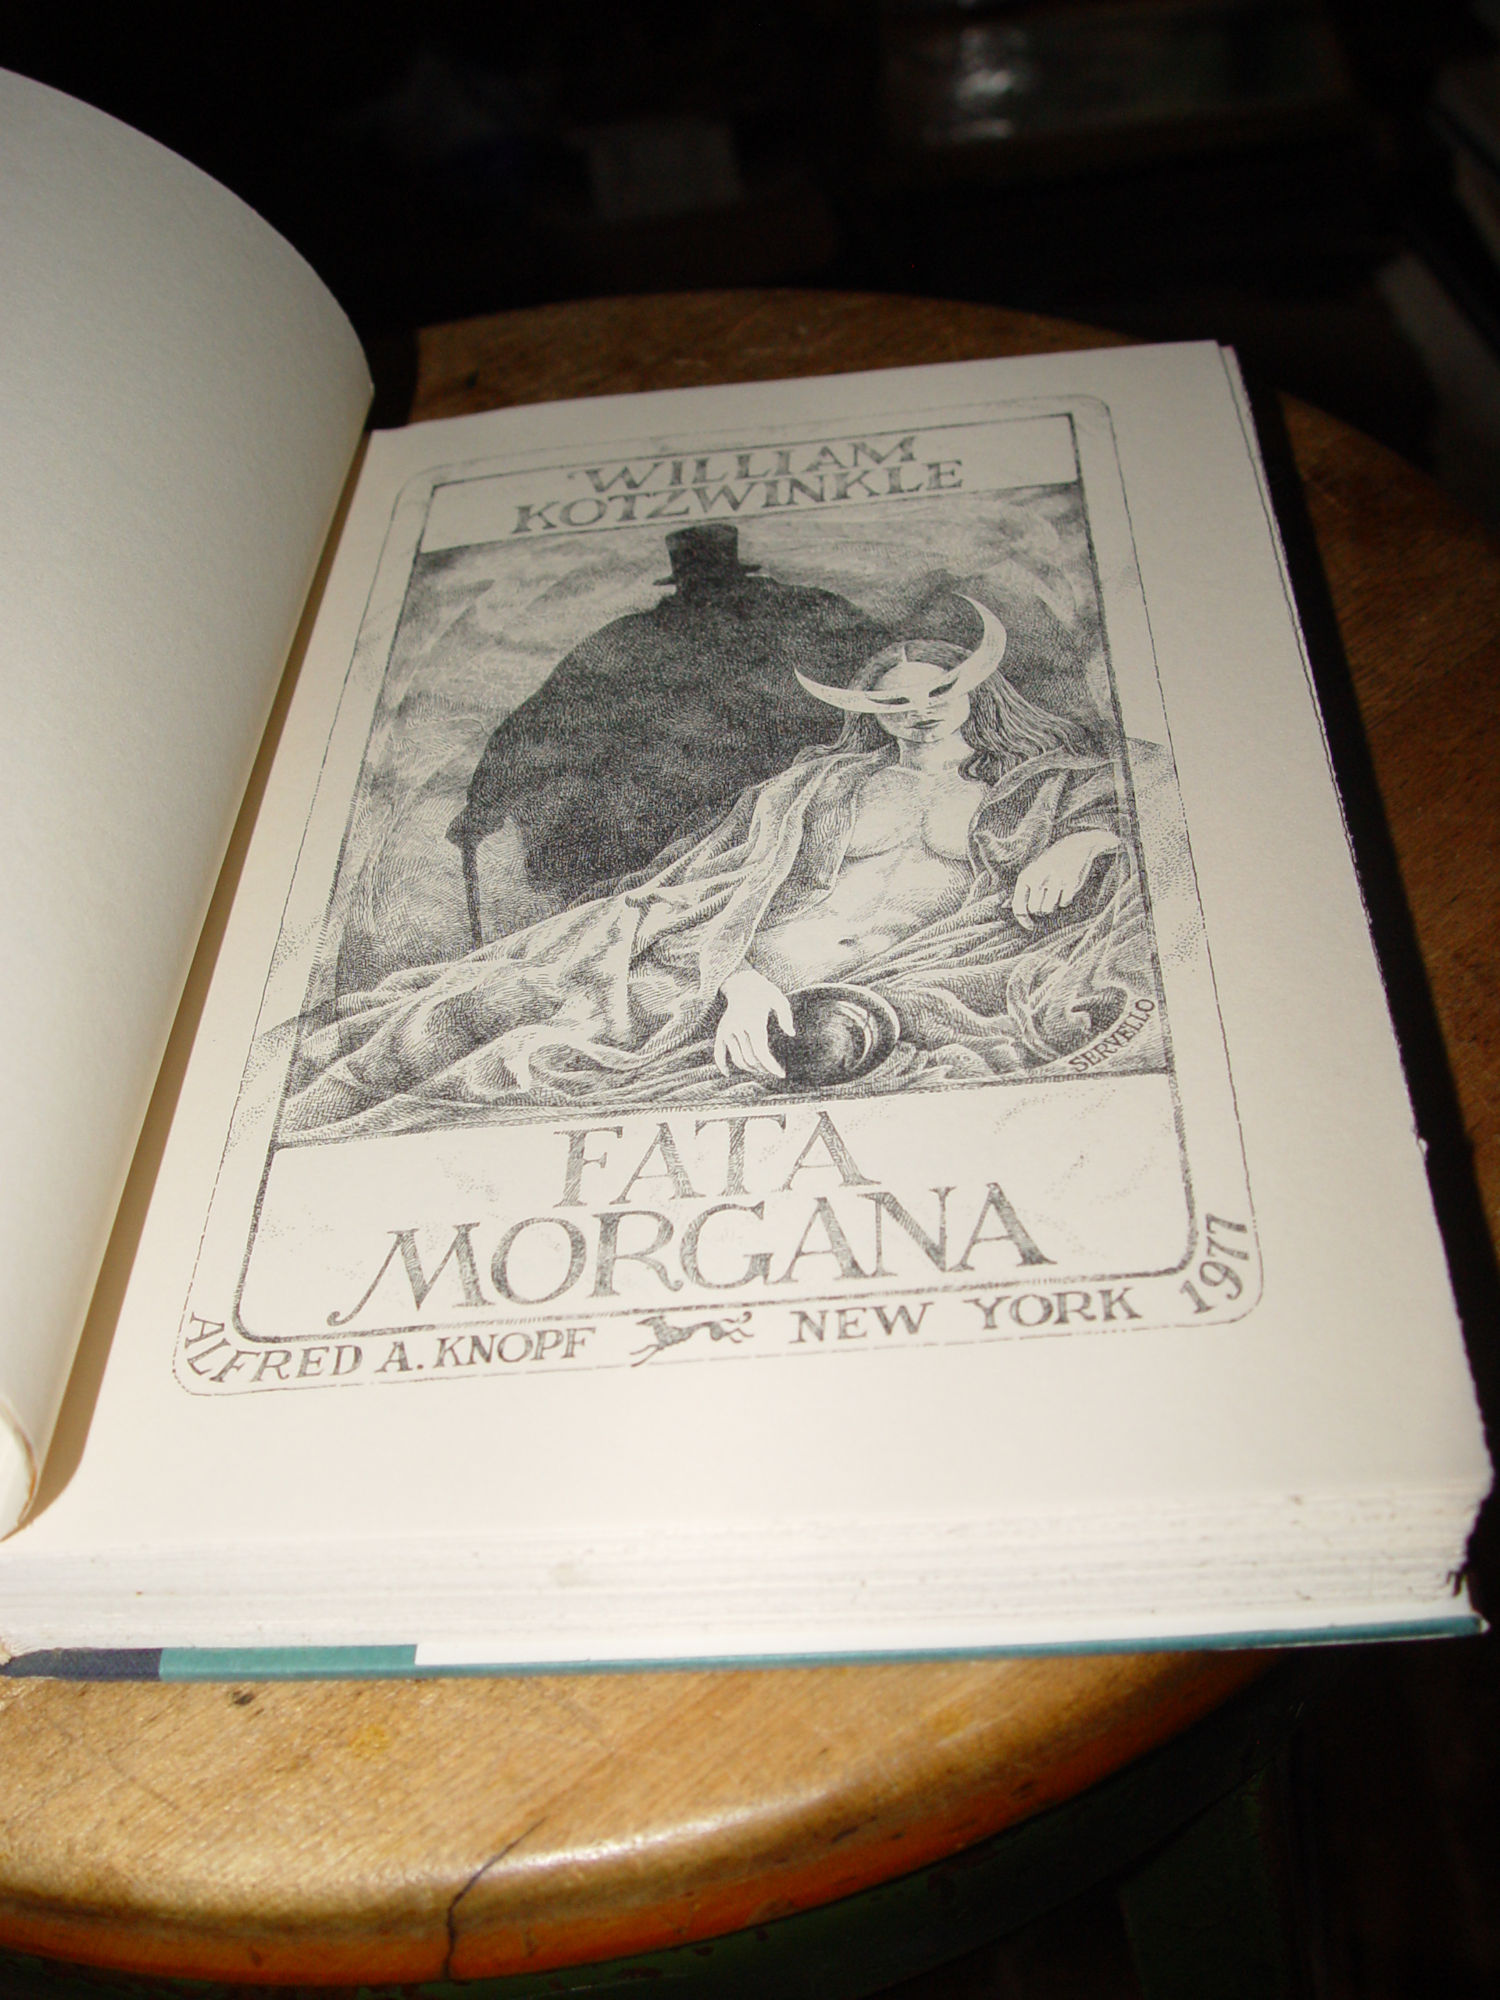 Fata Morgana by William                                         Kotzwinkle 1977 Edition -                                         Mystery and Intrigue Grosset                                         & Dunlap 1931